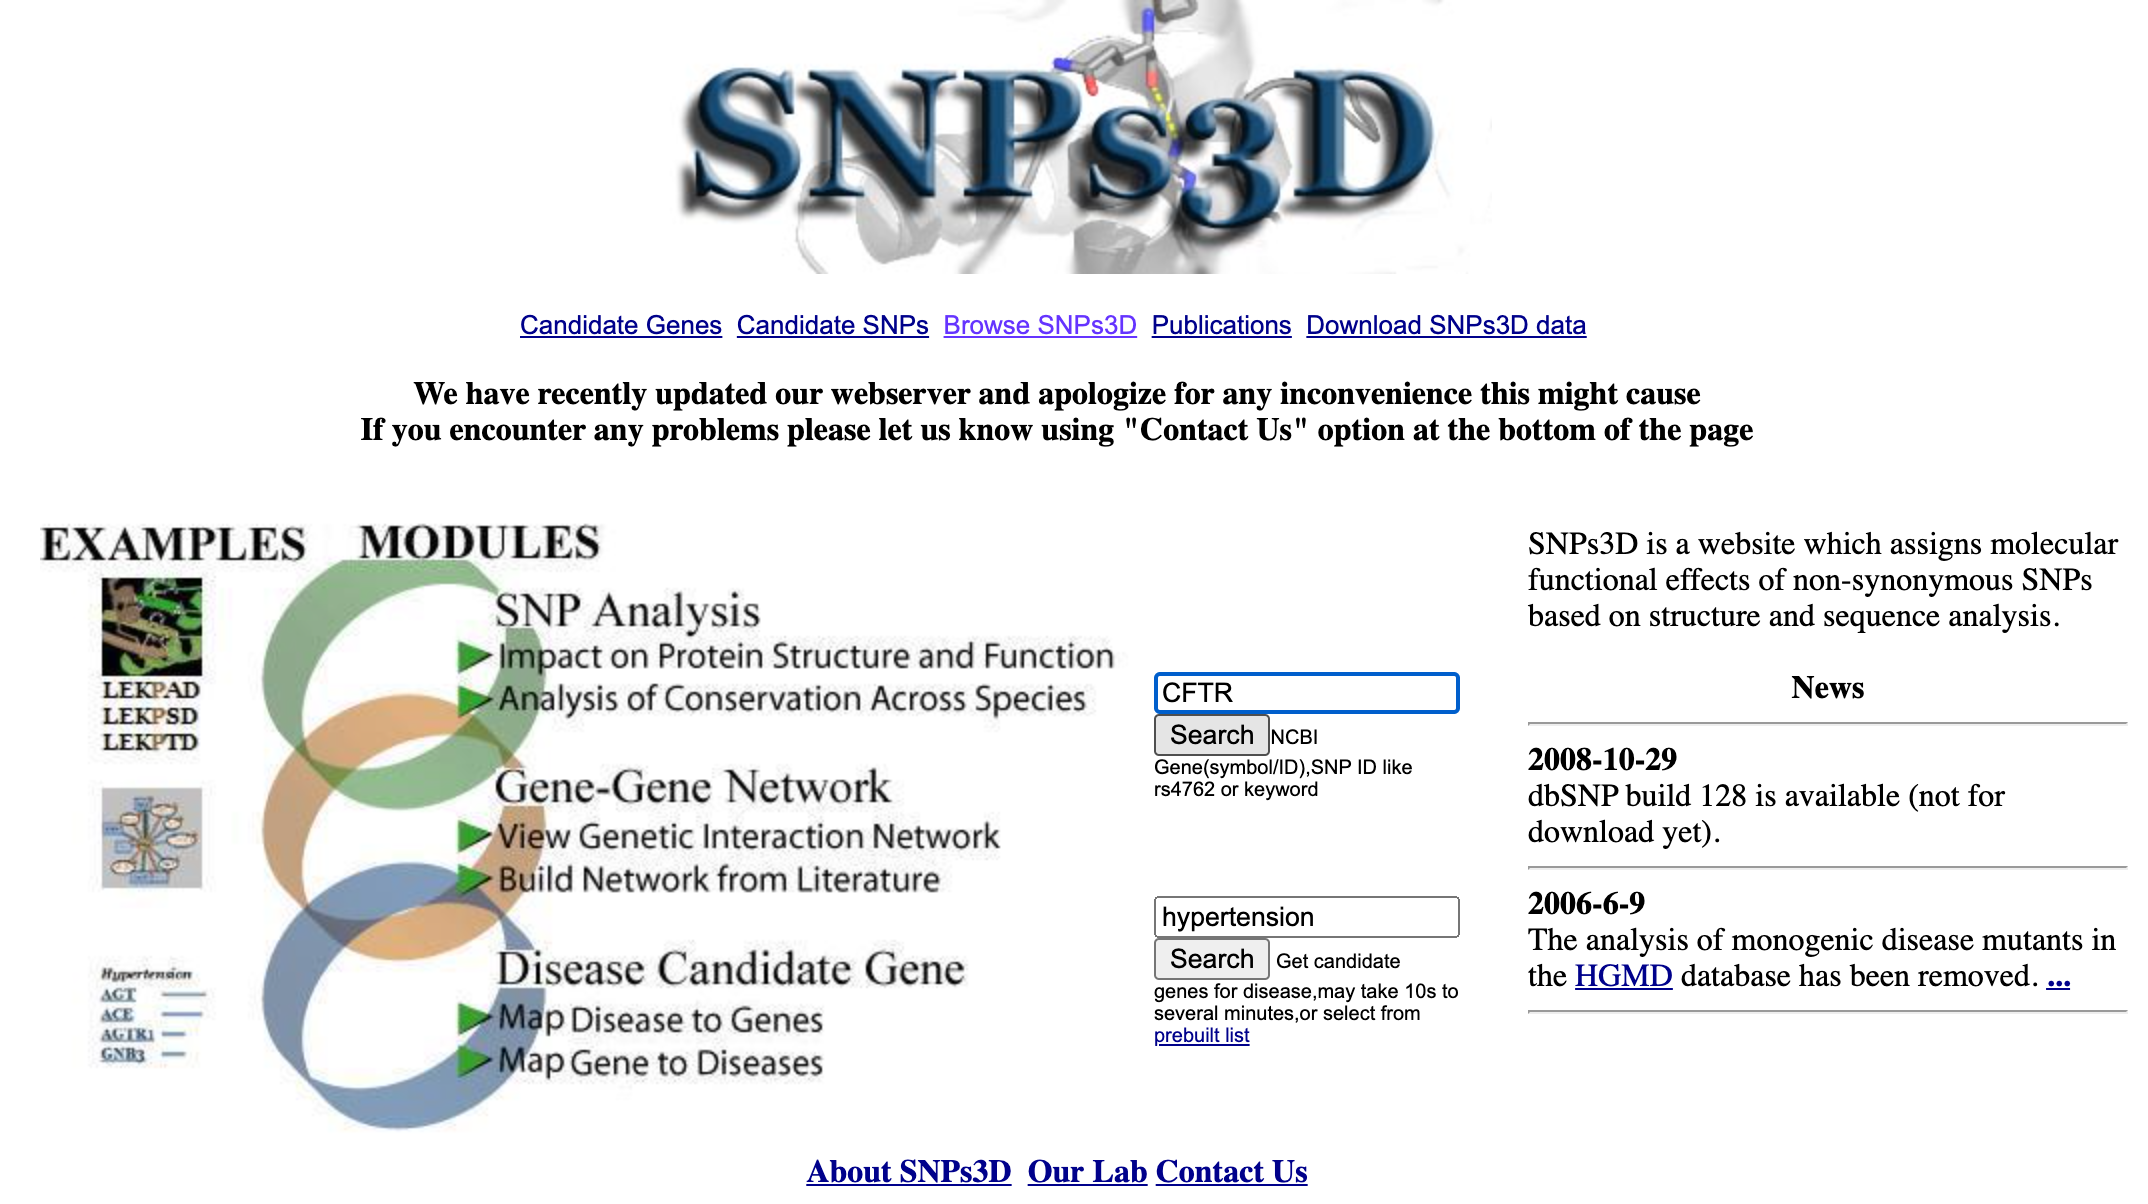 Screenshot of the homepage on the website snps3d.org